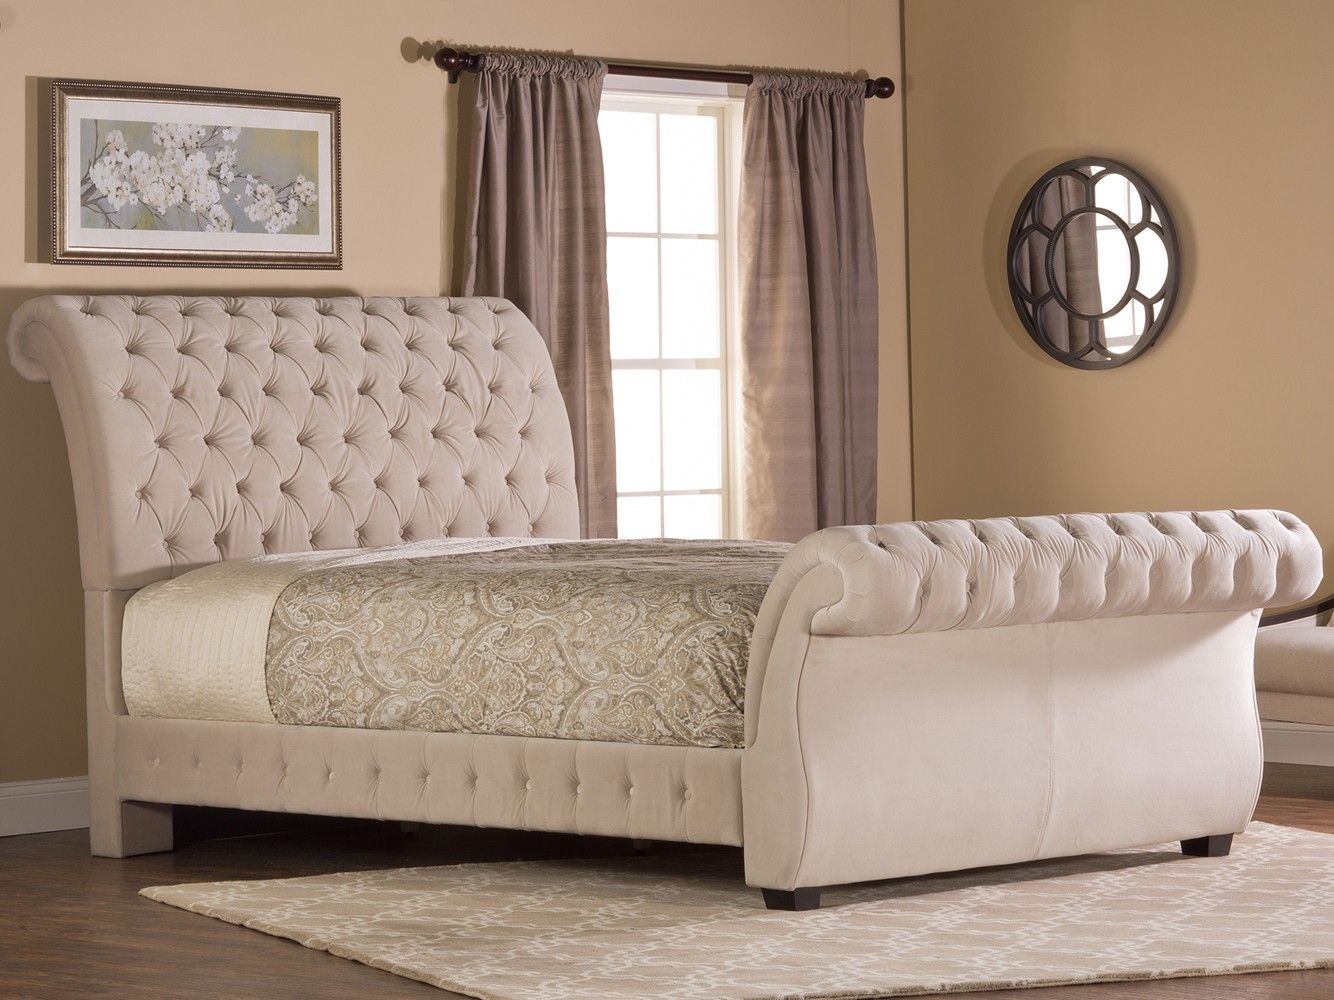 Bombay Fabric Upholstered Bed In Buckwheat By Hillsdale